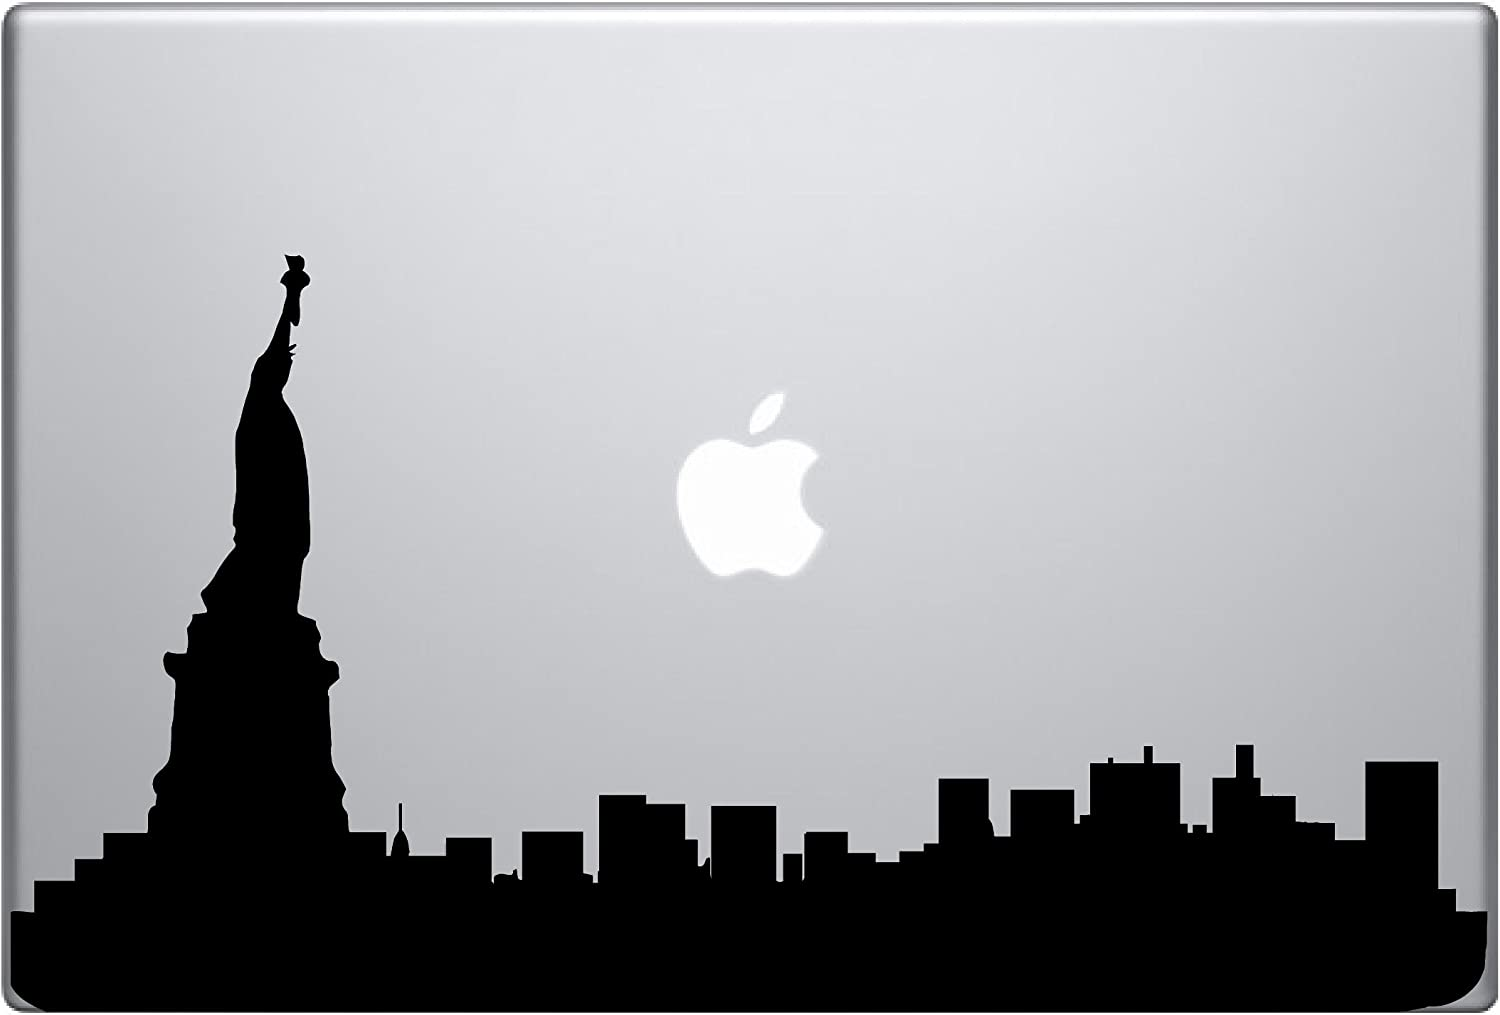 Statue of Liberty Silhouette of New York City Macbook Ipad Decal Skin Sticker Laptop